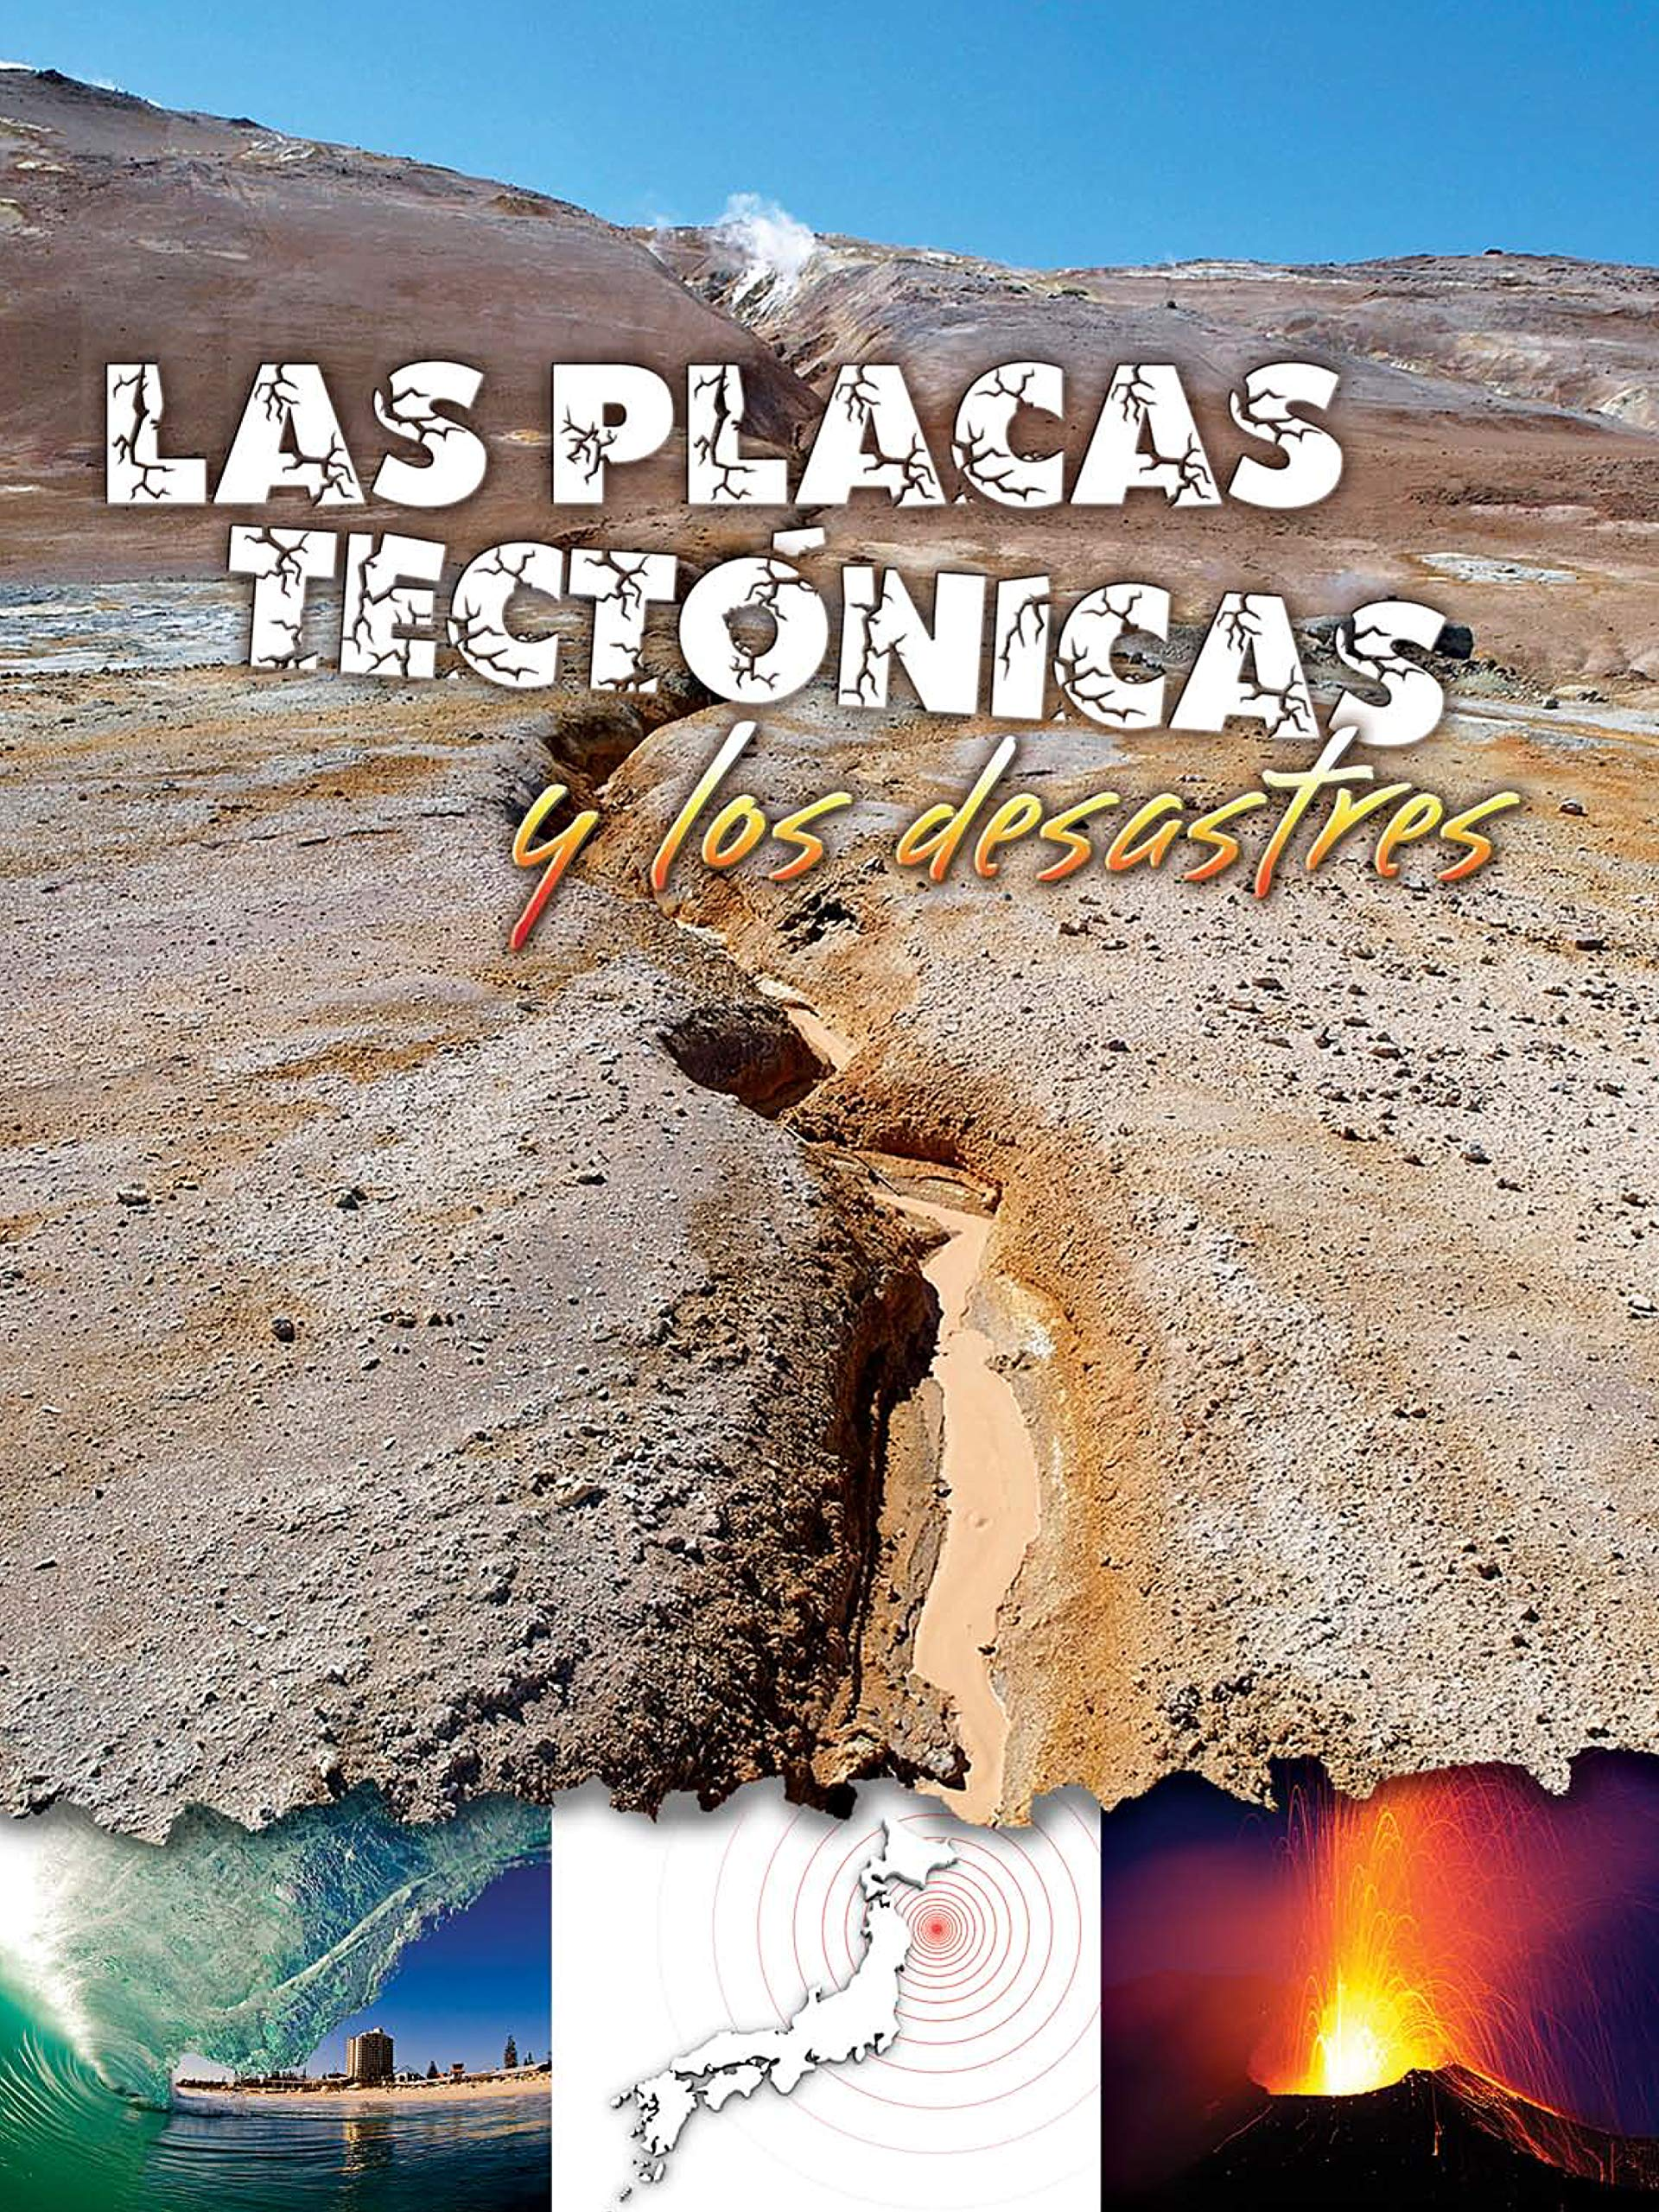 Download Las placas tectónicas y los desastres: Plate Tectonics and Disasters (Let's Explore Science) pdf epub